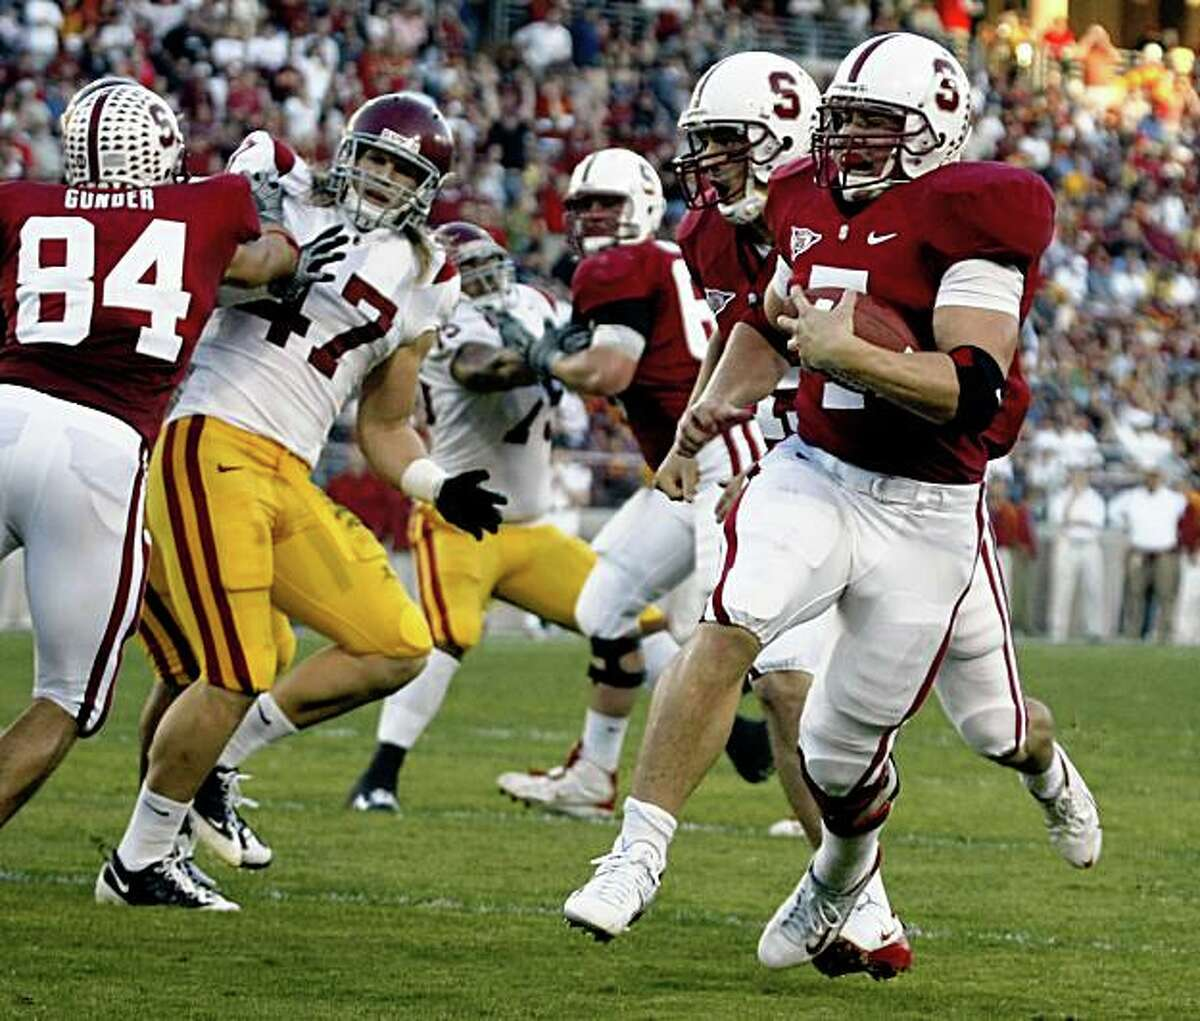 Stanford's Toby Gerhart runs around end for the first touchdown of the game in the first quarter. Stanford and USC played to a tie at the end of the first half in Stanford Calif. November 15, 2008